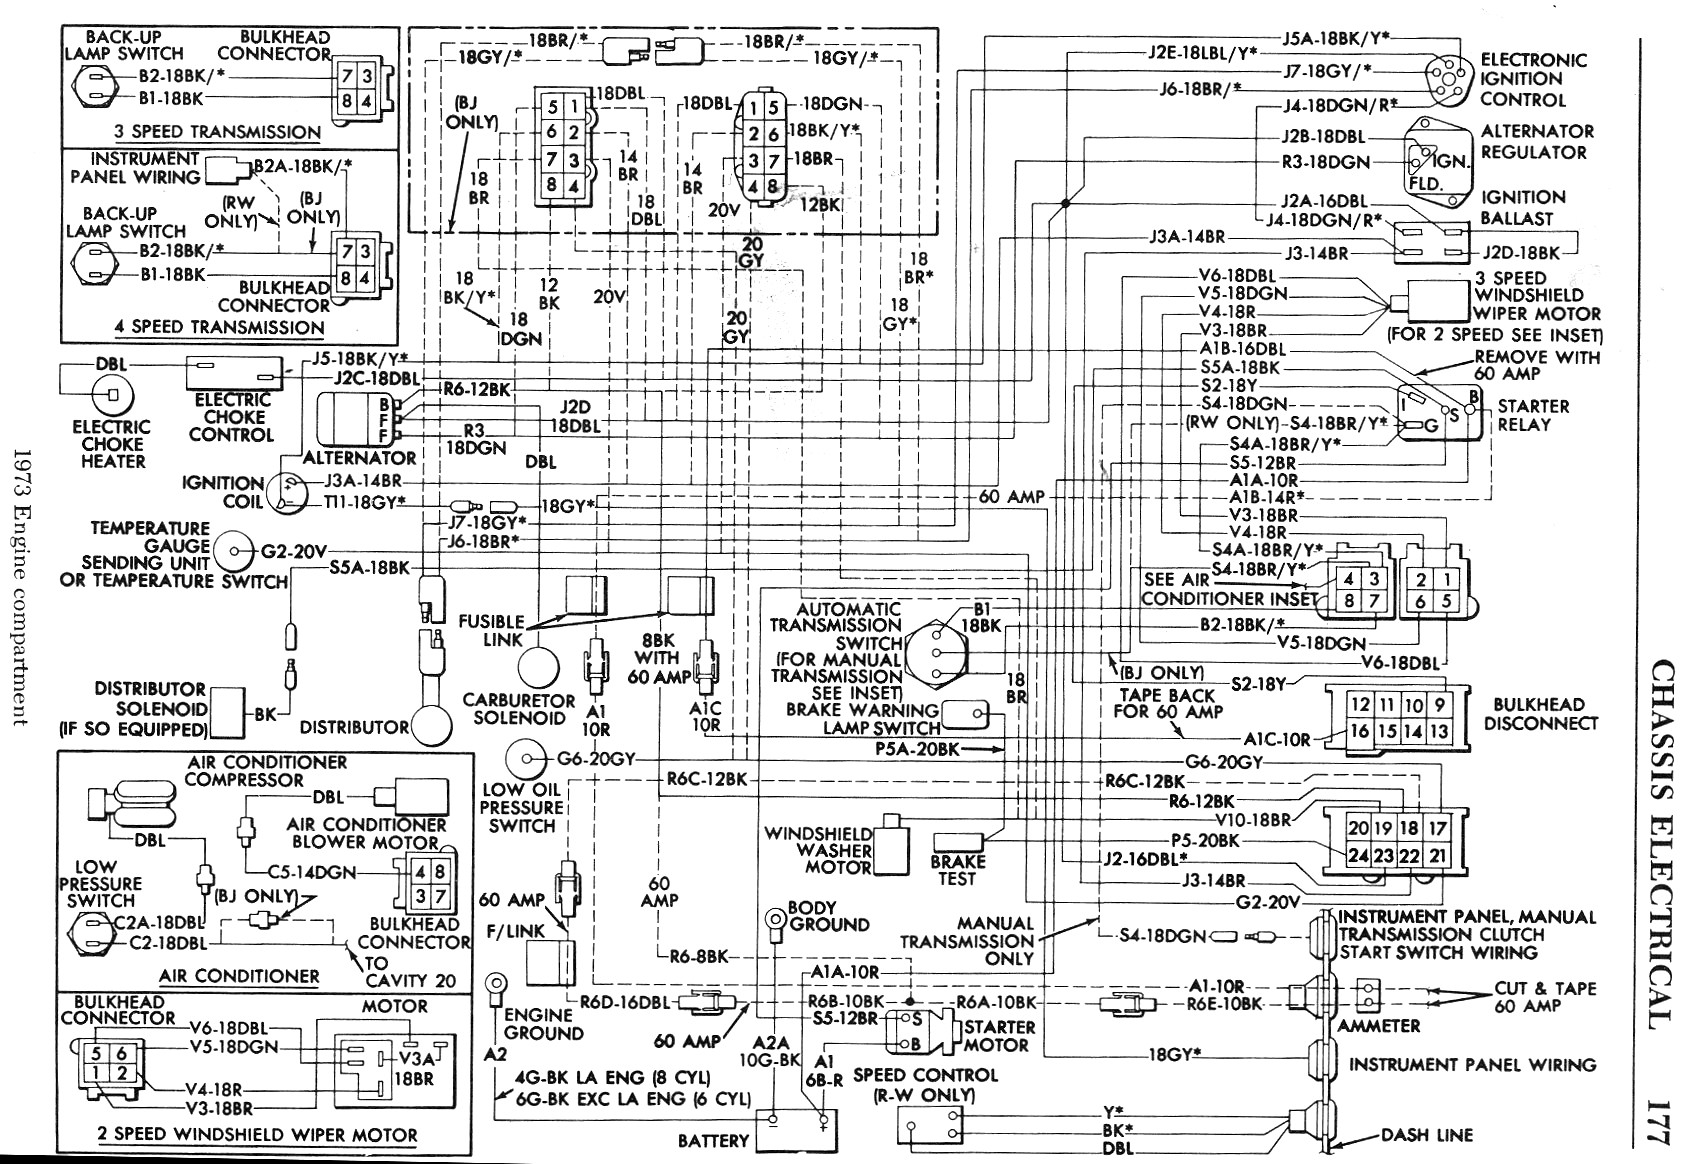 Wiring Diagram 73 Cuda - Wiring Diagram Data on challenger engine diagram, challenger cable, challenger parts diagram, challenger headlights, challenger circuit breaker,